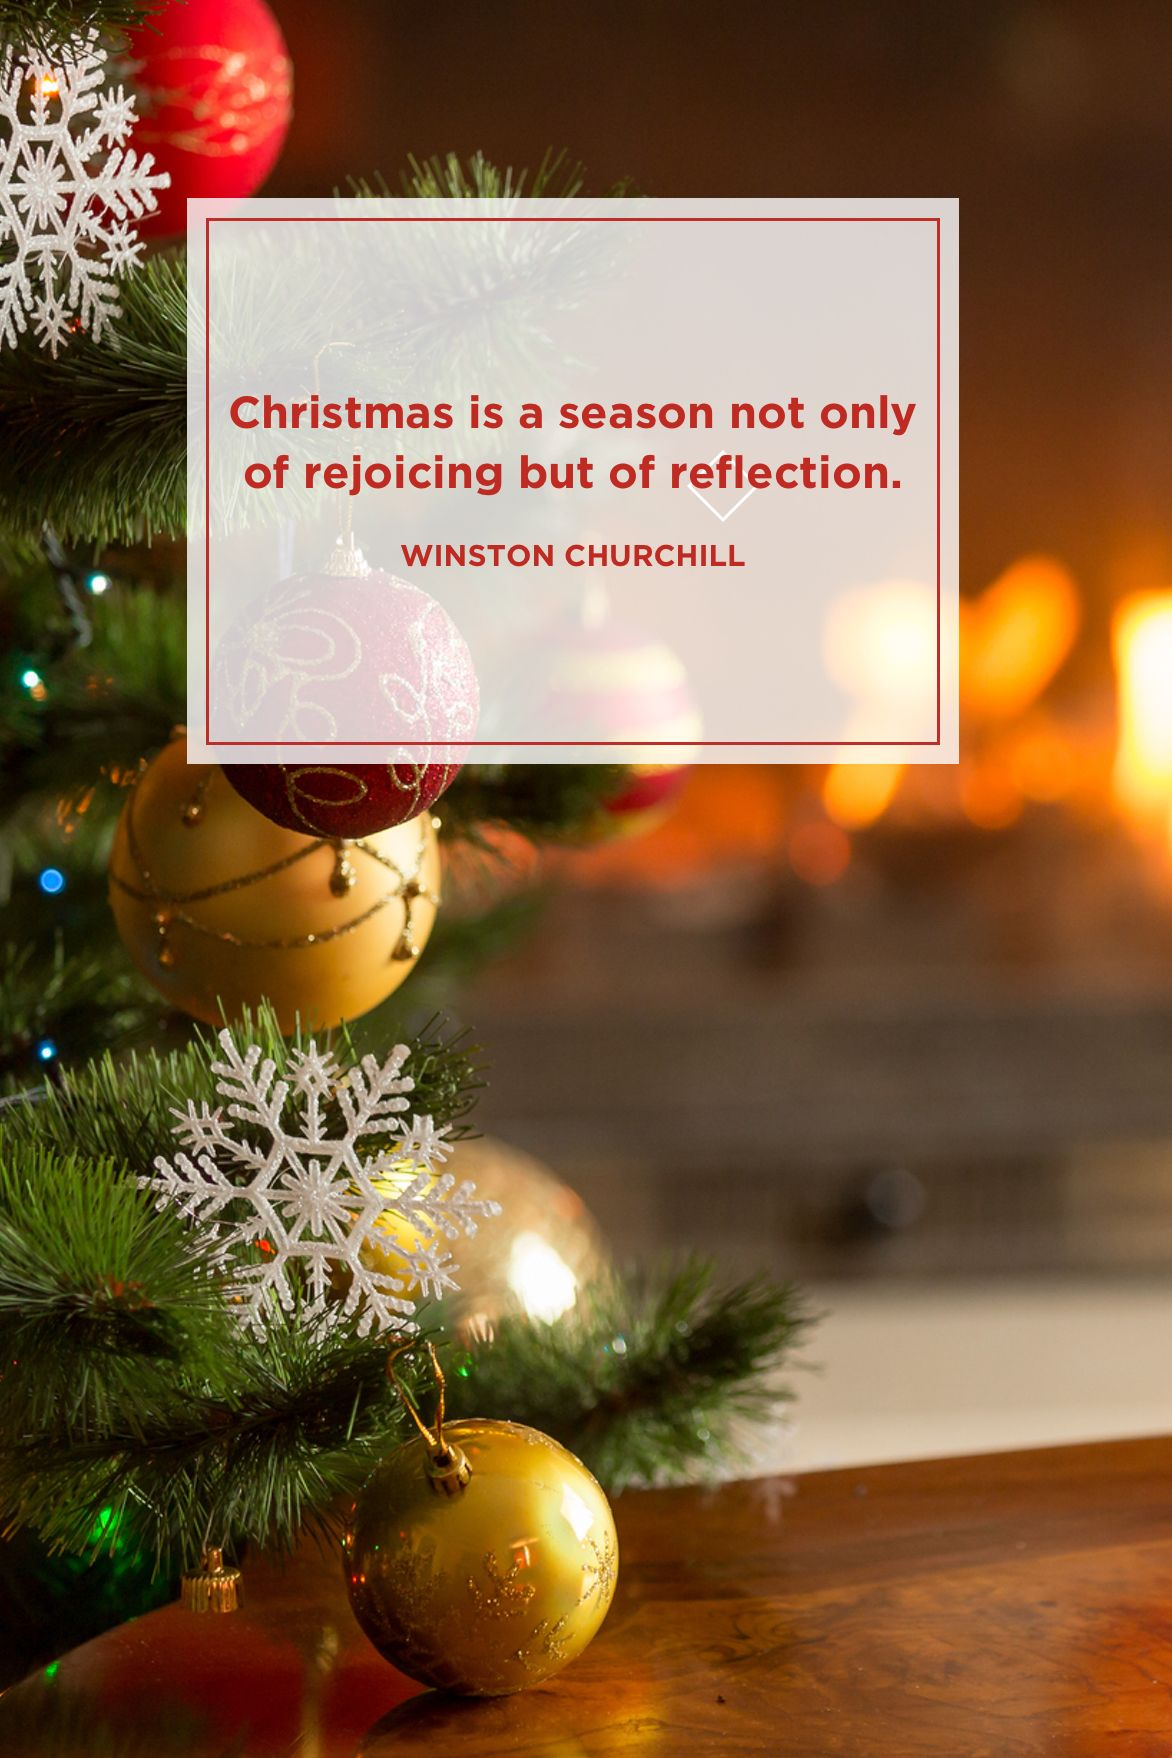 3 Best Christmas Quotes - Most Inspiring & Festive Holiday Sayings